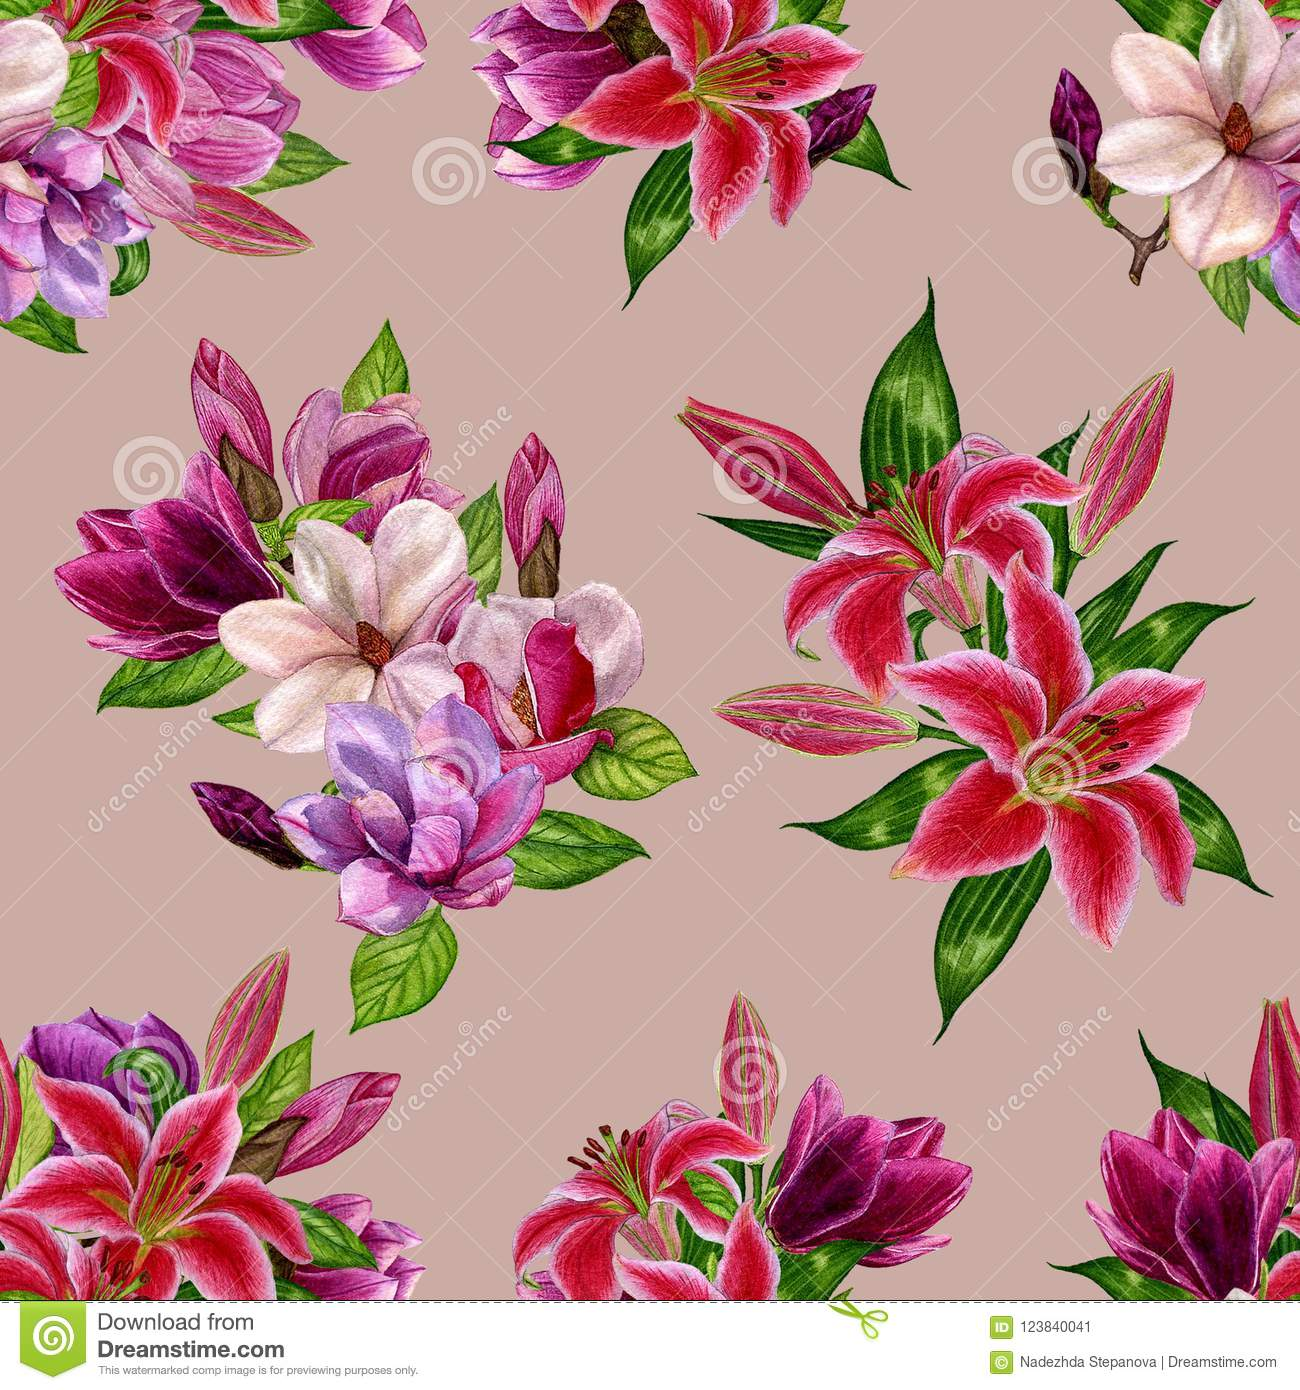 Pattern With Flowers Of Magnolia And Lilies On A Colored Background